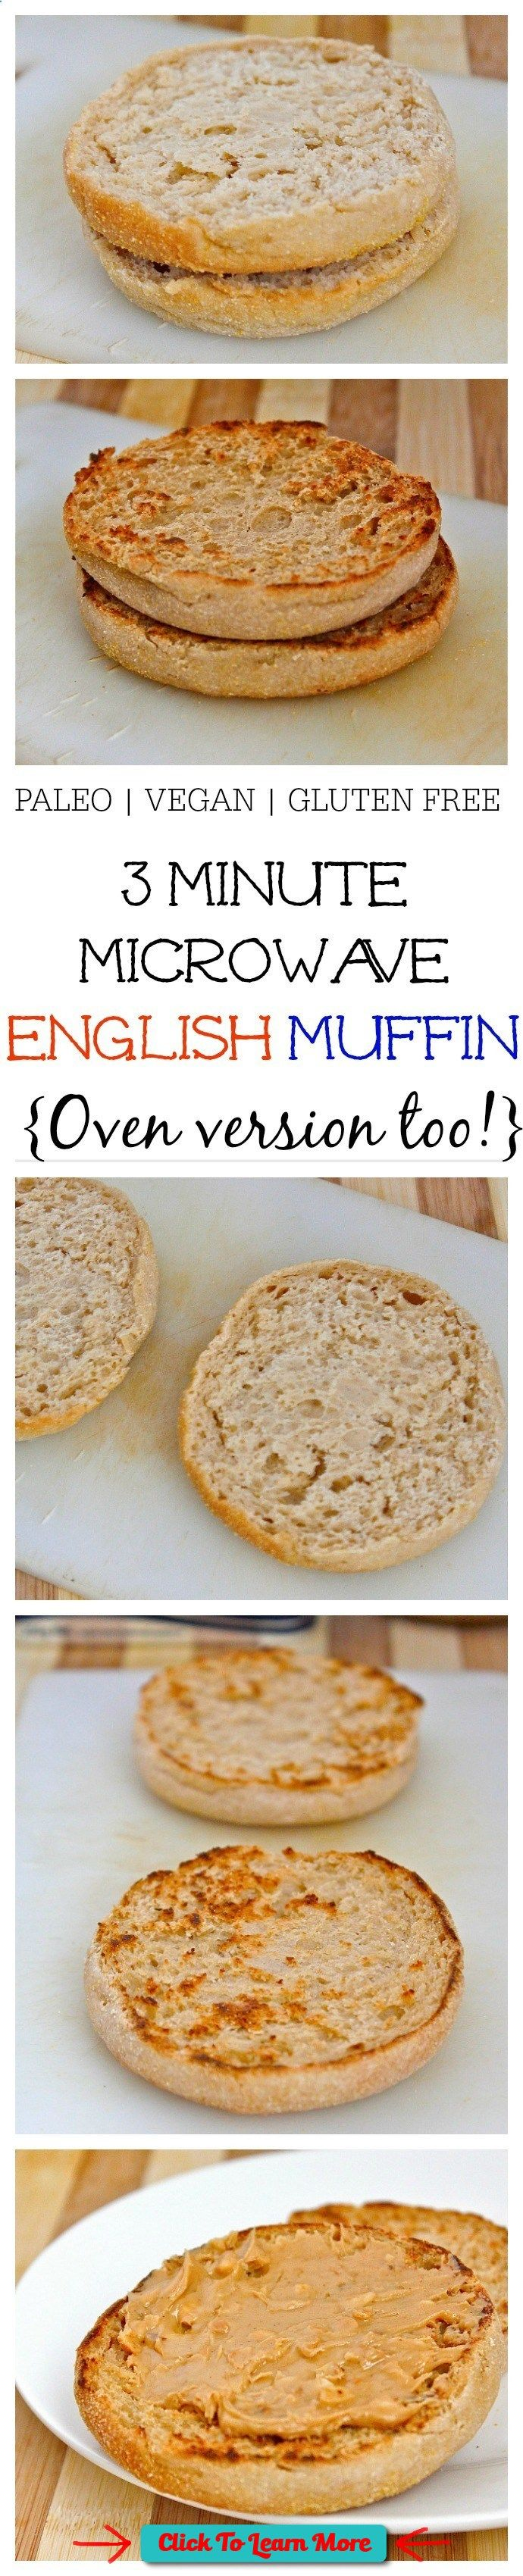 #FastestWayToLoseWeight by EATING, Click to learn more, 3 Minute Microwave English Muffin (Paleo, Vegan AND gluten free!)- Just THREE minutes and a simple ingredient list is needed to whip up this microwave English muffin which is JUST like the real deal! There are three versions- Paleo, Vegan and Gluten Free to suit most dietary lifestyles- For those without a microwave, there is an oven friendly version! Thebigmansworld - thebigmansworld.com , #HealthyRecipes, #FitnessRecipes, #Burn....